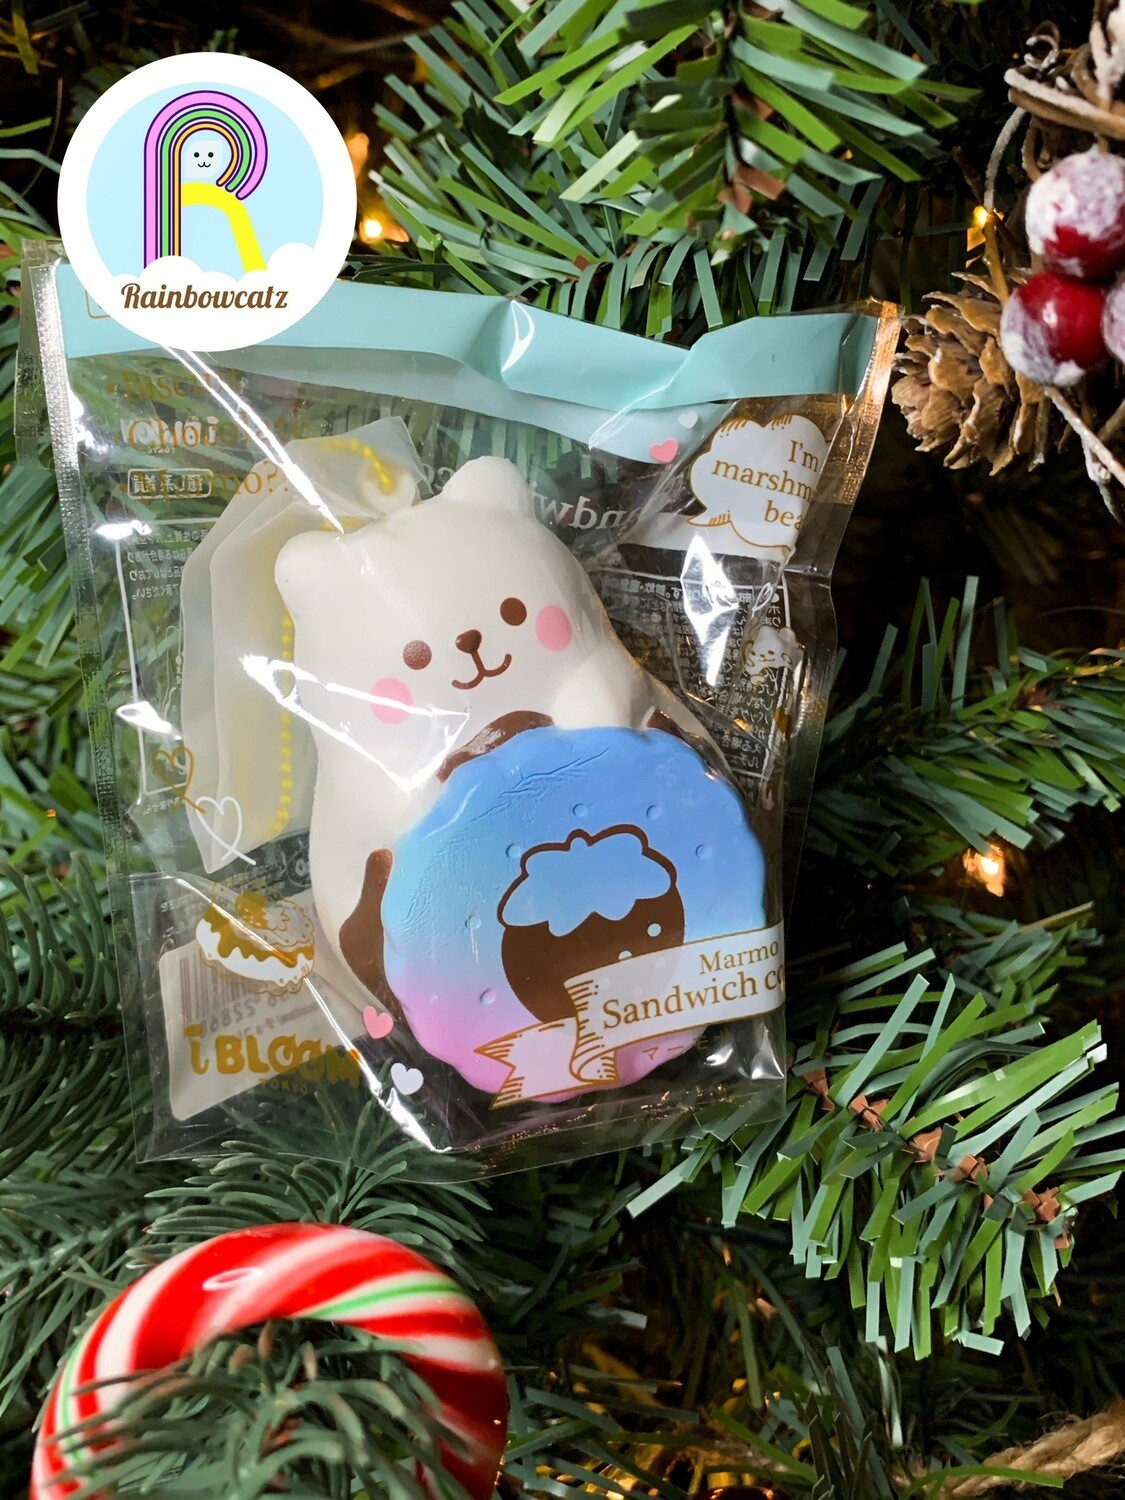 [Limited Edition] IBloom x PJAS J Marmo Sandwich Cookie Squishy - Cosmo